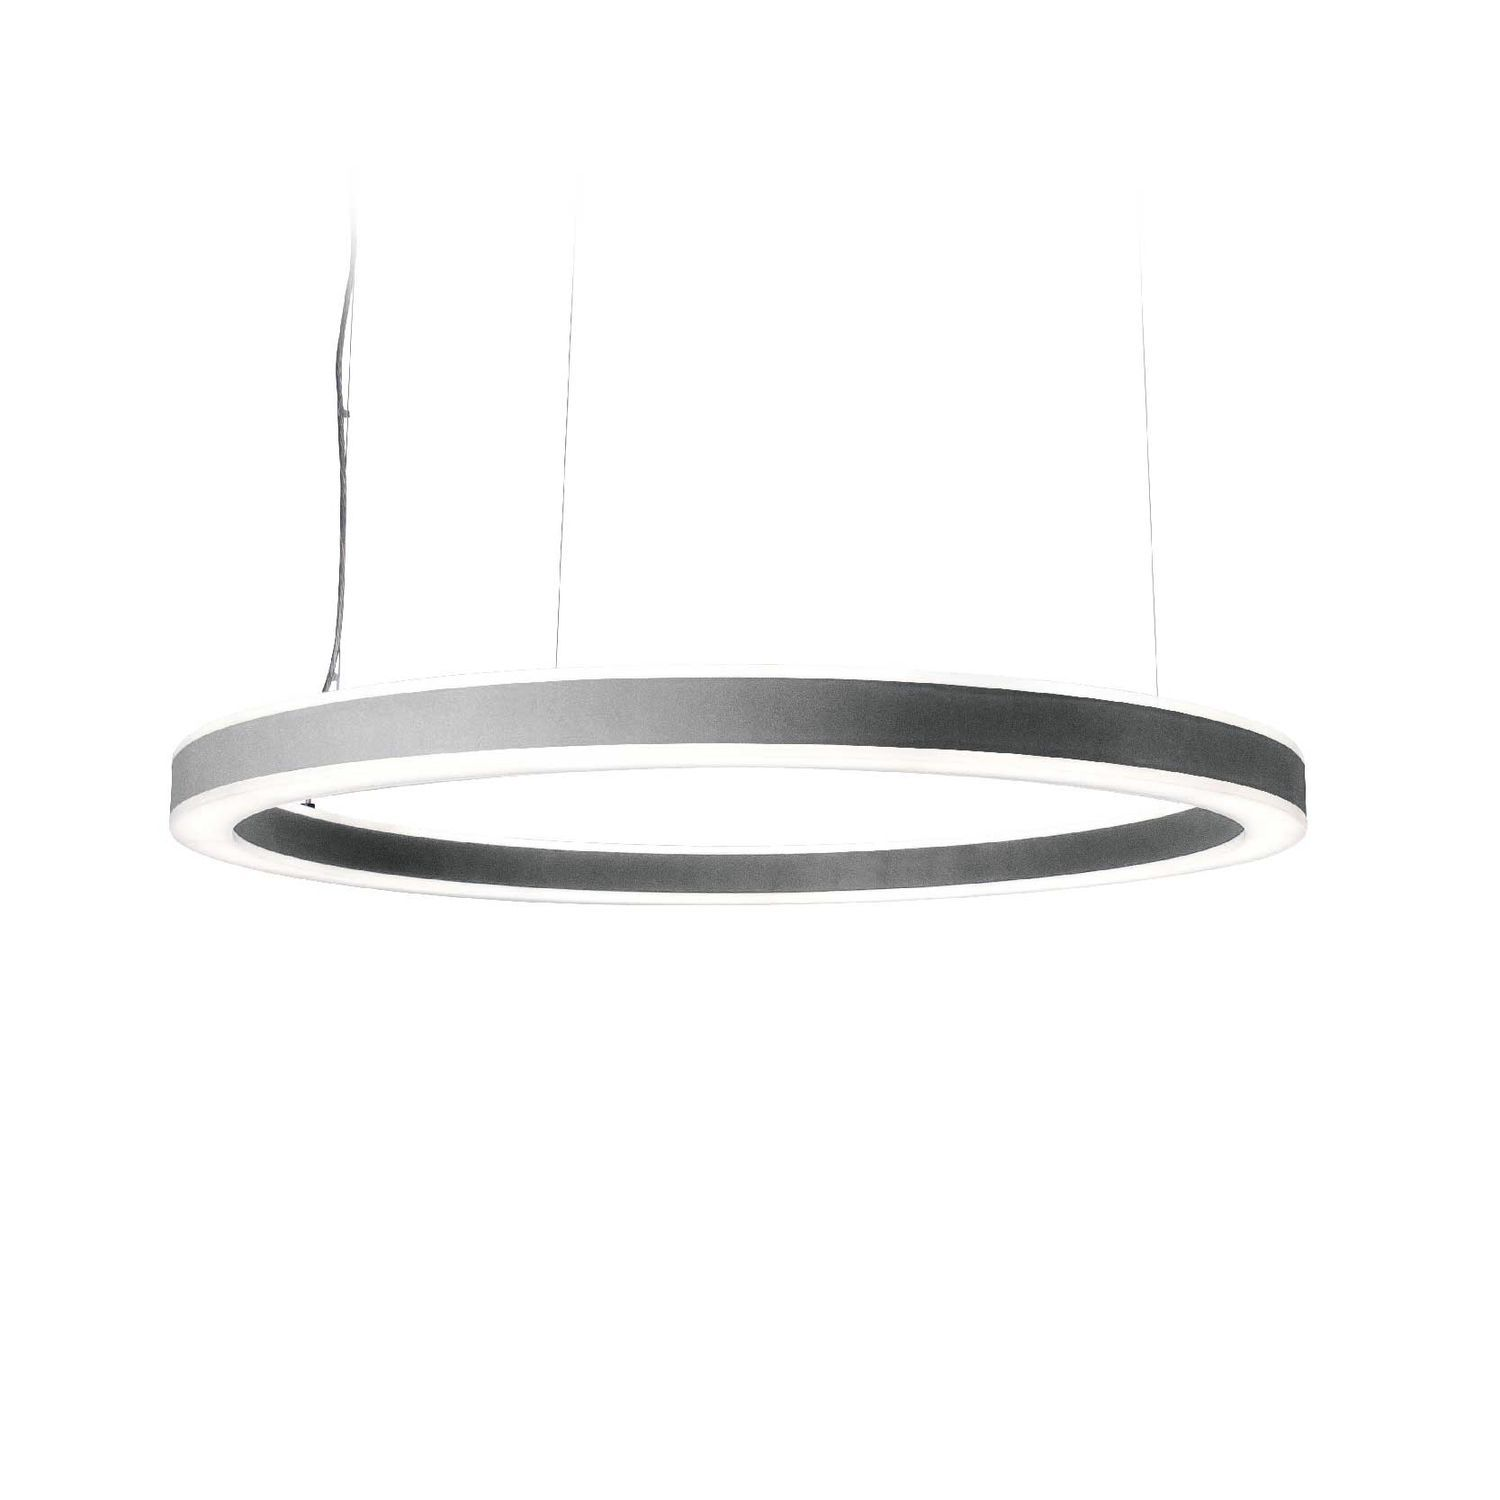 Attractive Hanging Light Fixture / LED / Round / Aluminum HALO Planlicht ...